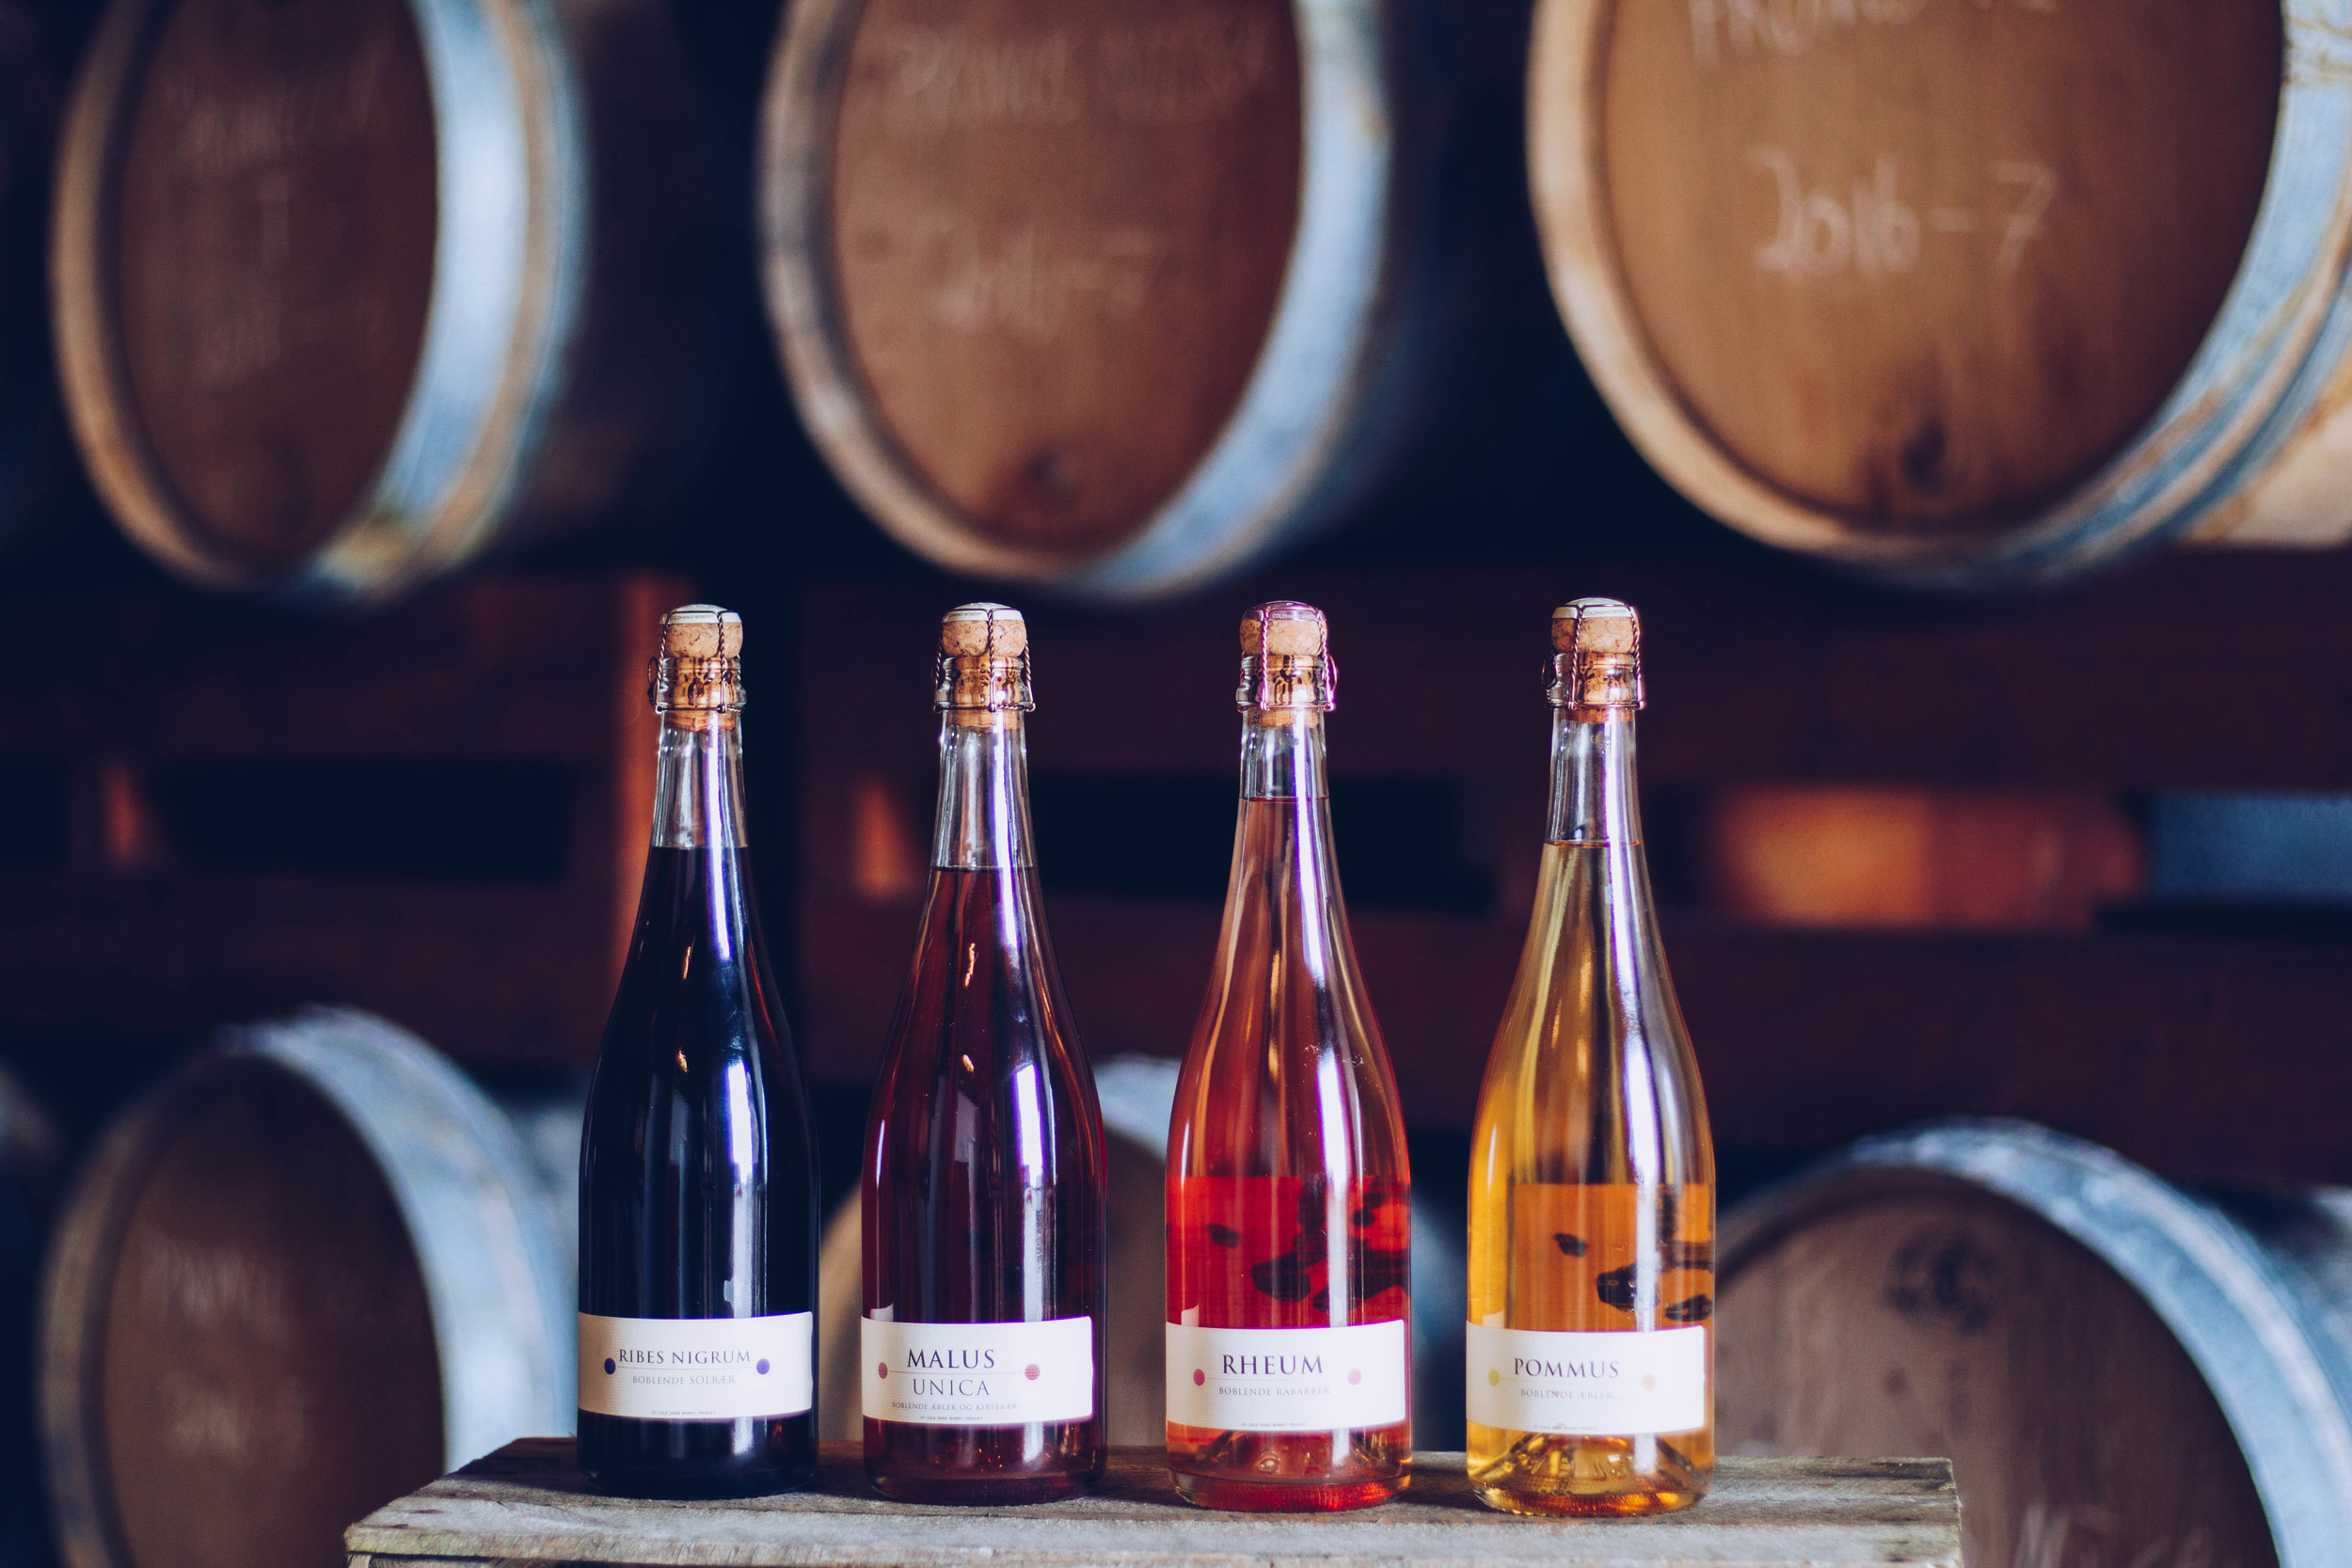 4 bottles of Cold Hand wines